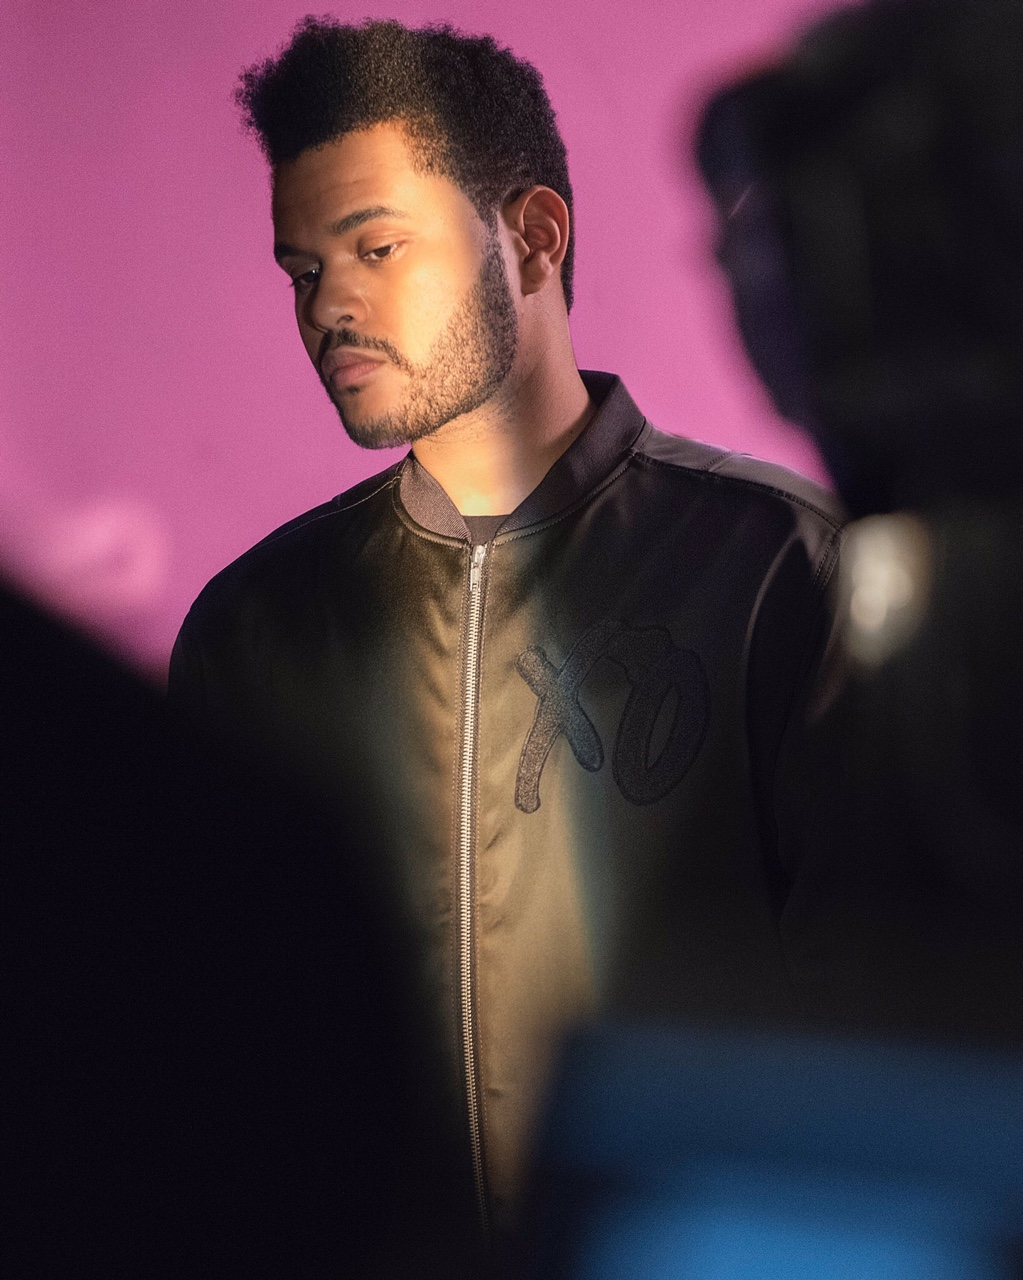 The Weeknd To Be H&M's New Face For Spring 2017 Campaign